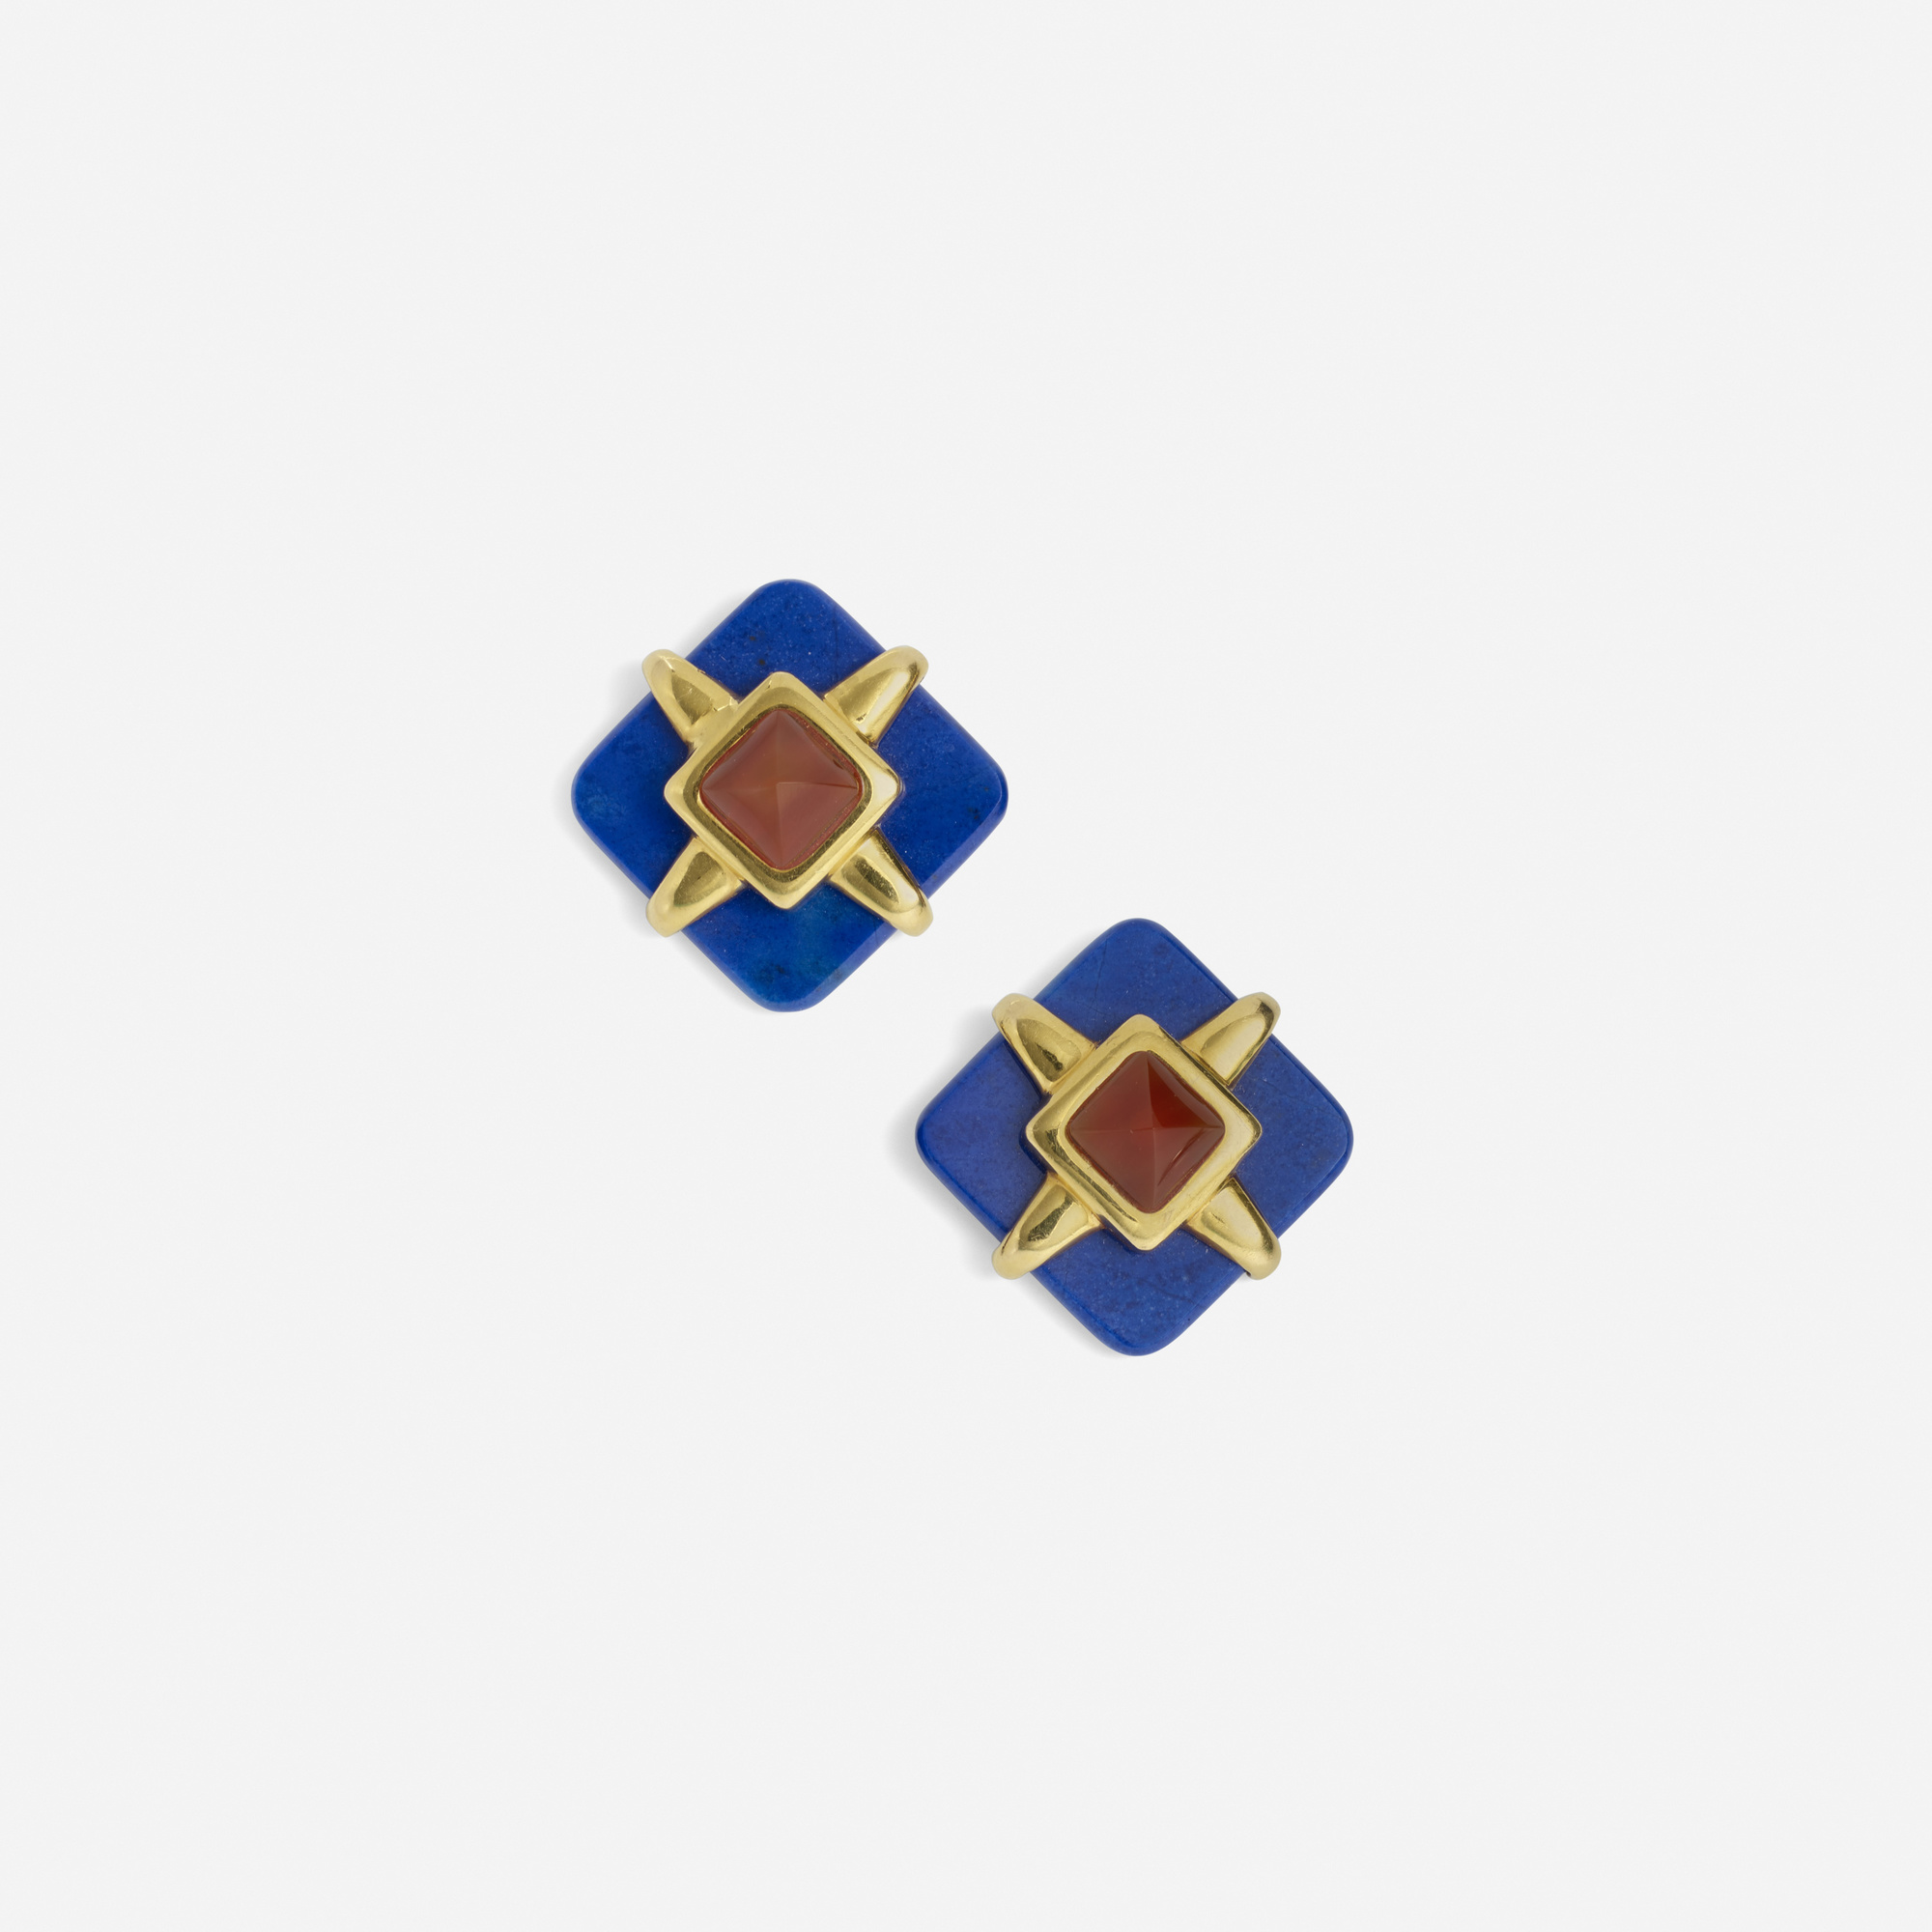 173: Aldo Cipullo for Cartier / A pair of gold, lapis lazuli and carnelian chalcedony earrings (1 of 1)